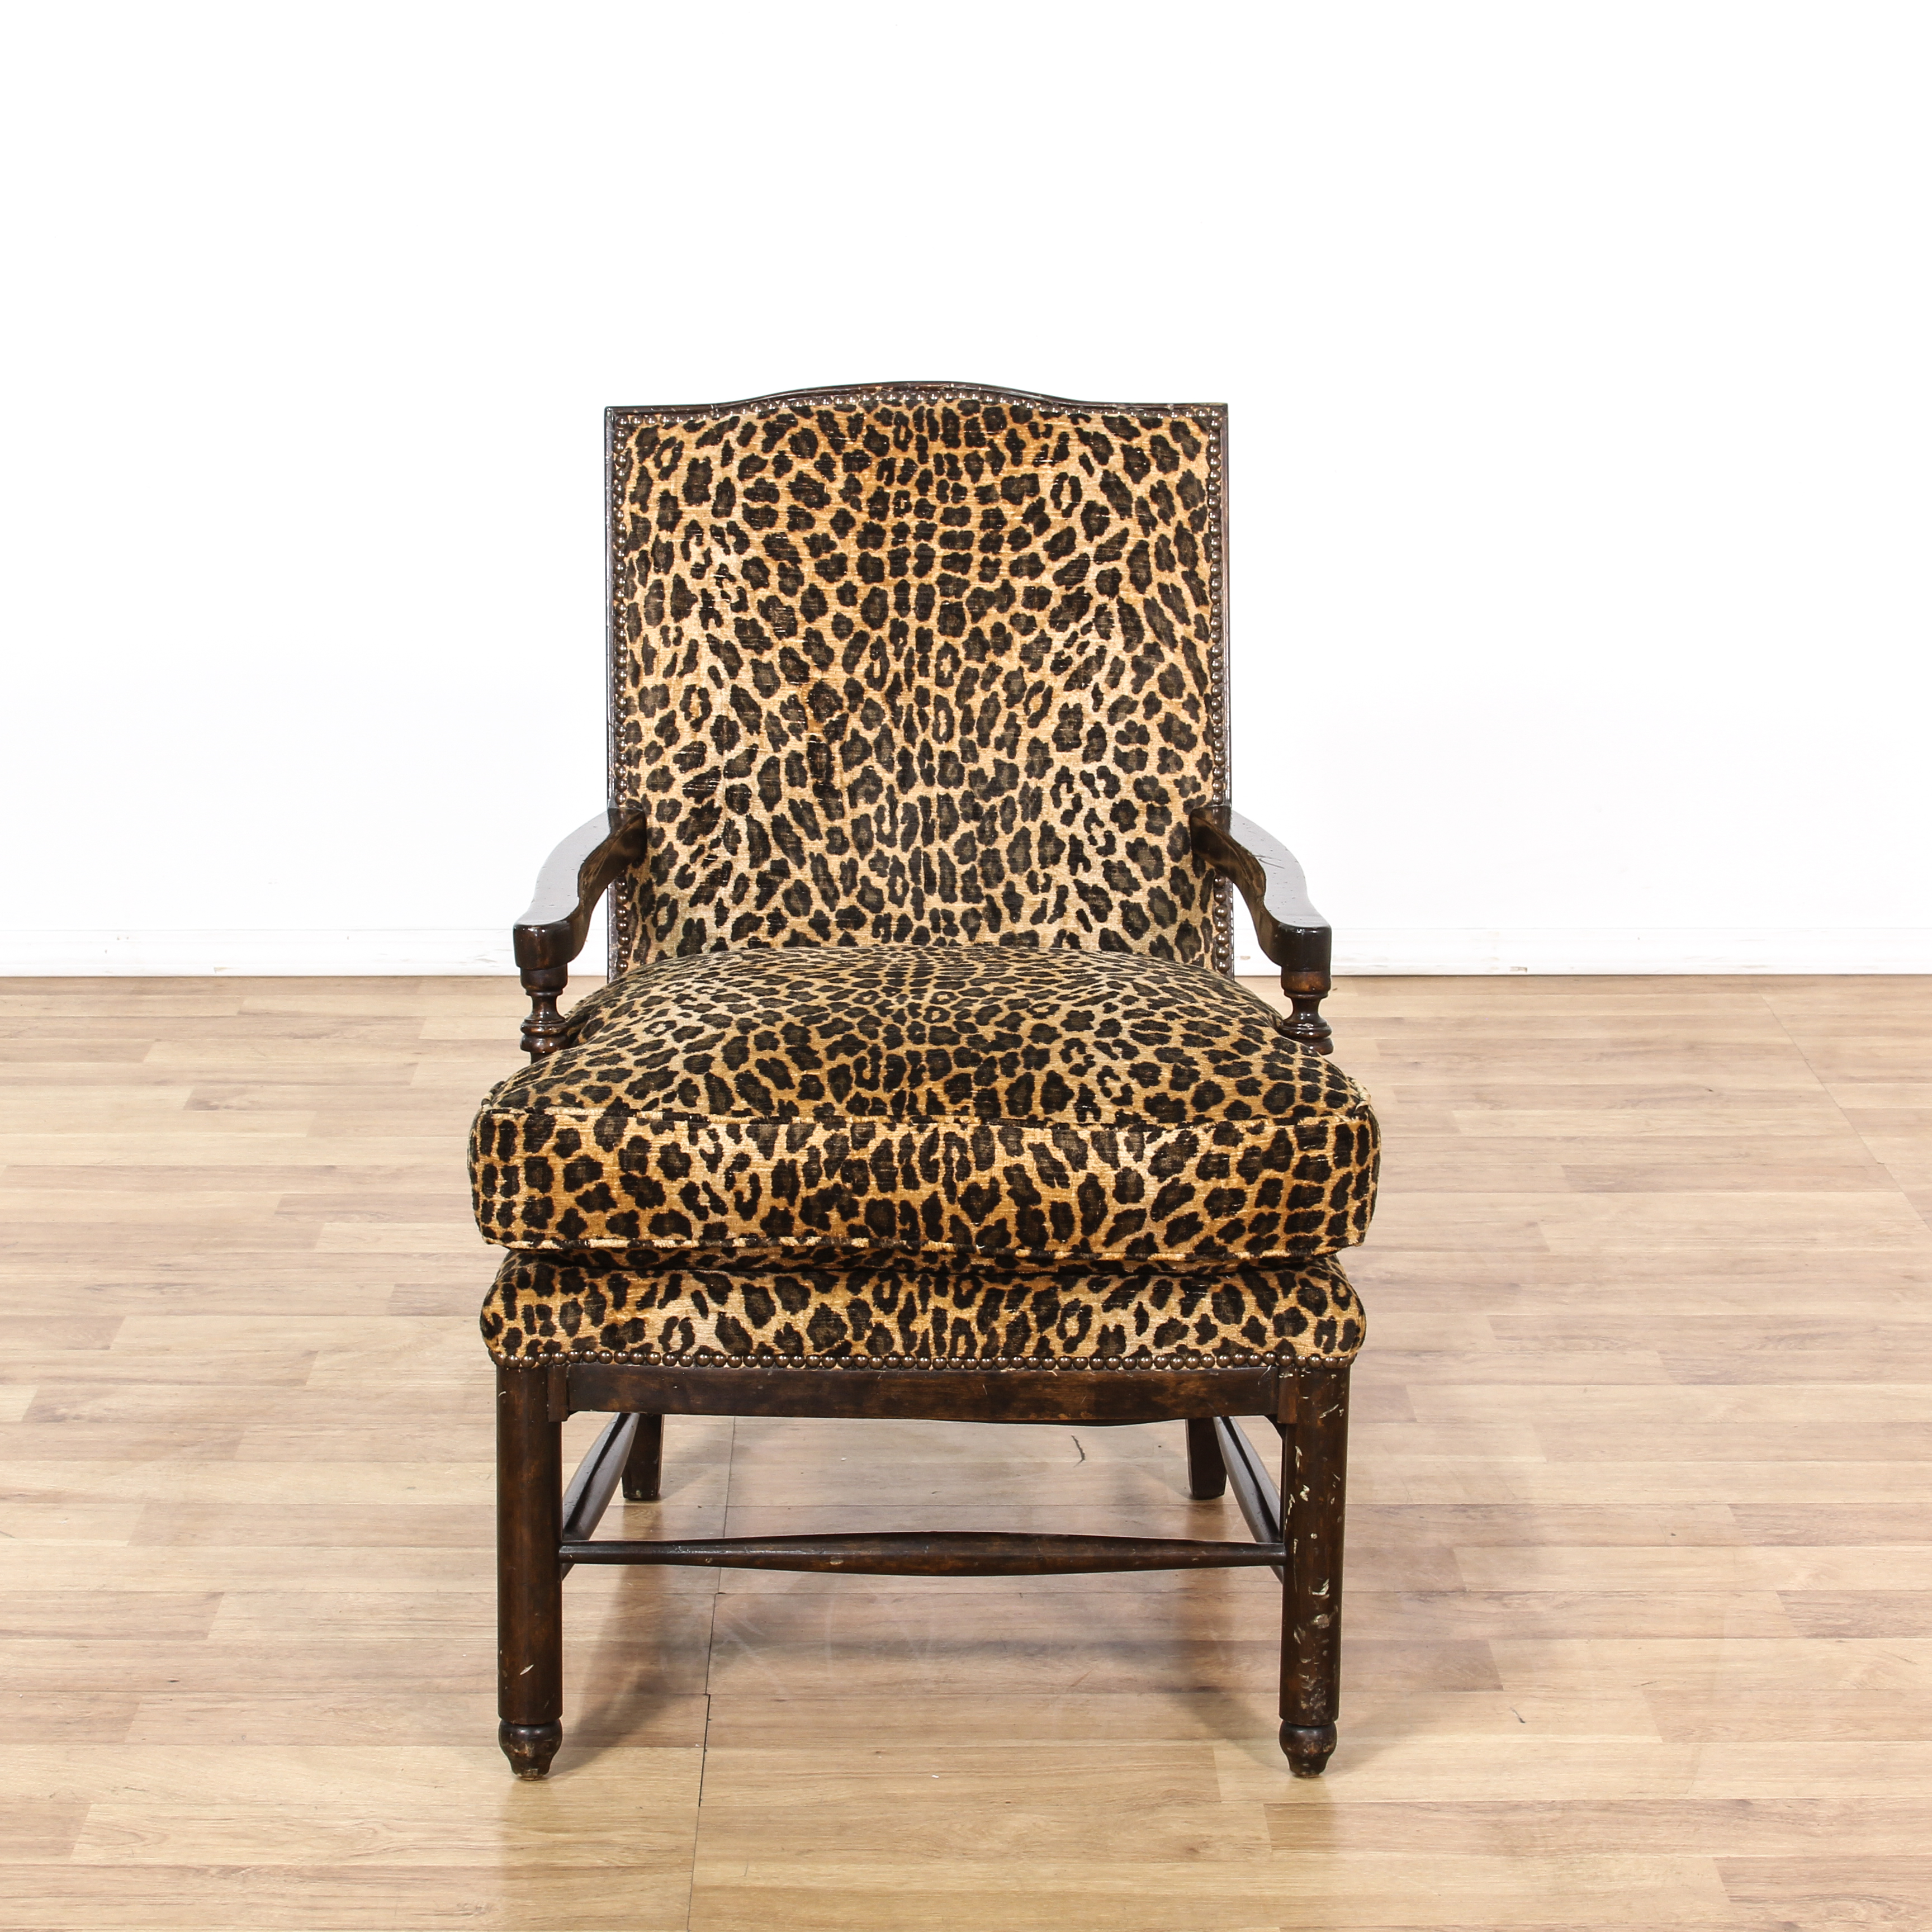 animal print accent chairs power chair accessories cup holder leopard carved wood loveseat vintage